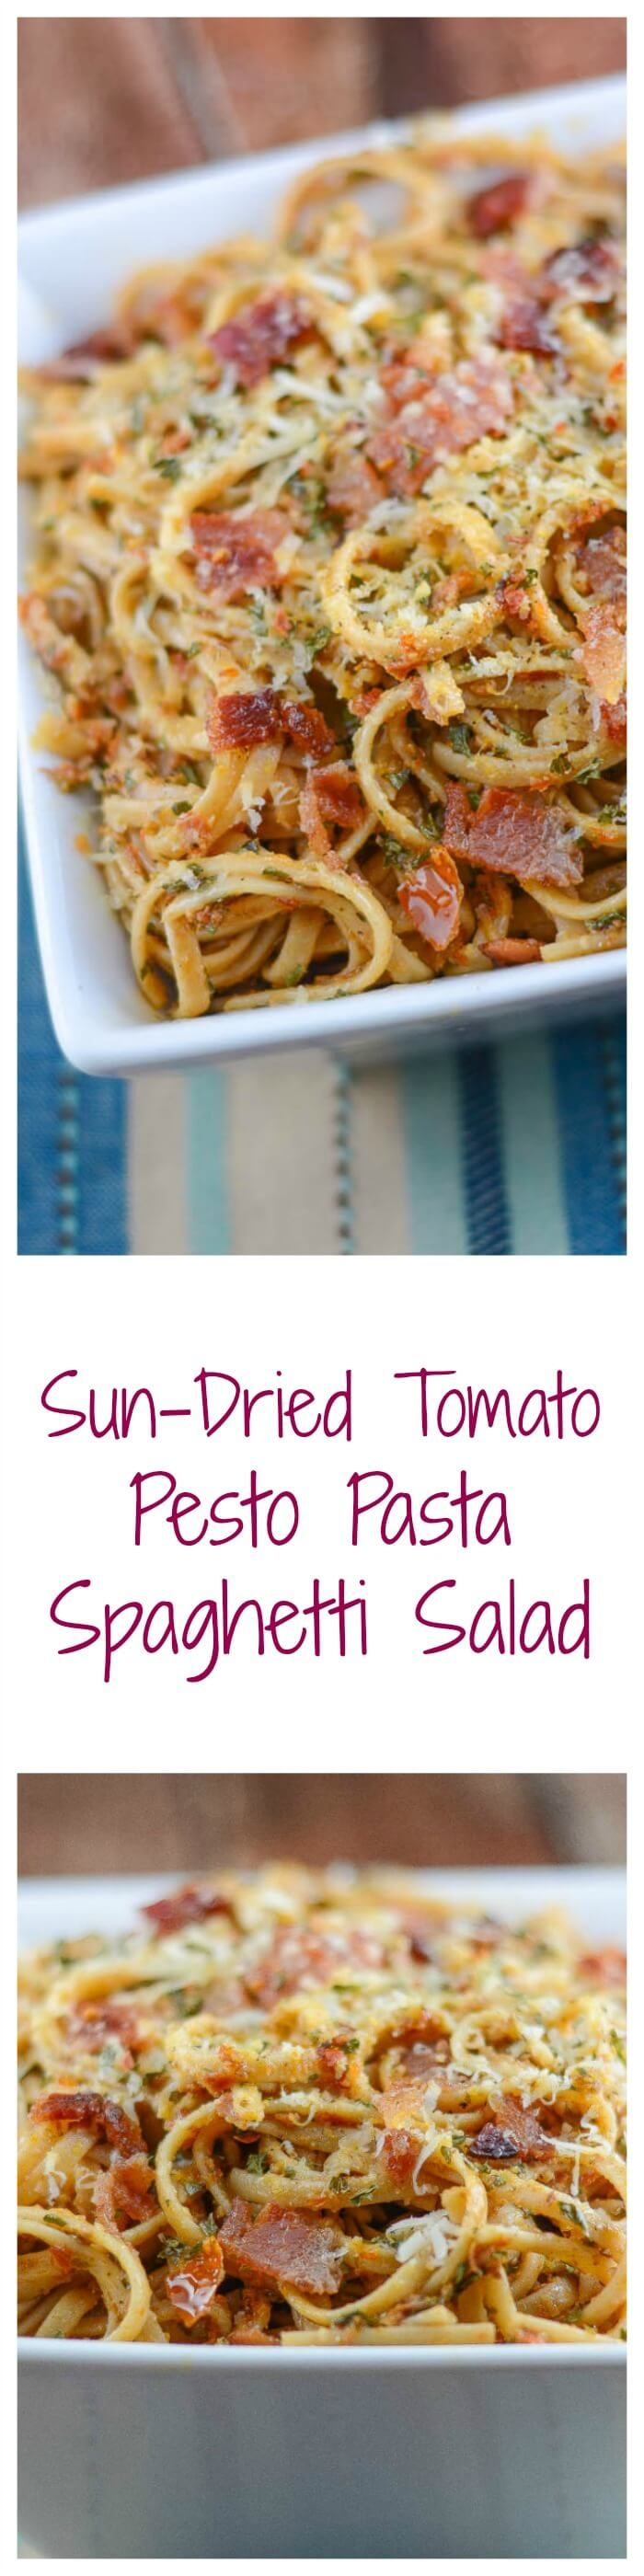 This Sun-Dried Tomato Pesto Pasta recipe, with spaghetti, sun-dried tomato pesto, bacon, and parmesan cheese makes a great spaghetti salad for a picnic. ~ http://FlavorMosaic.com